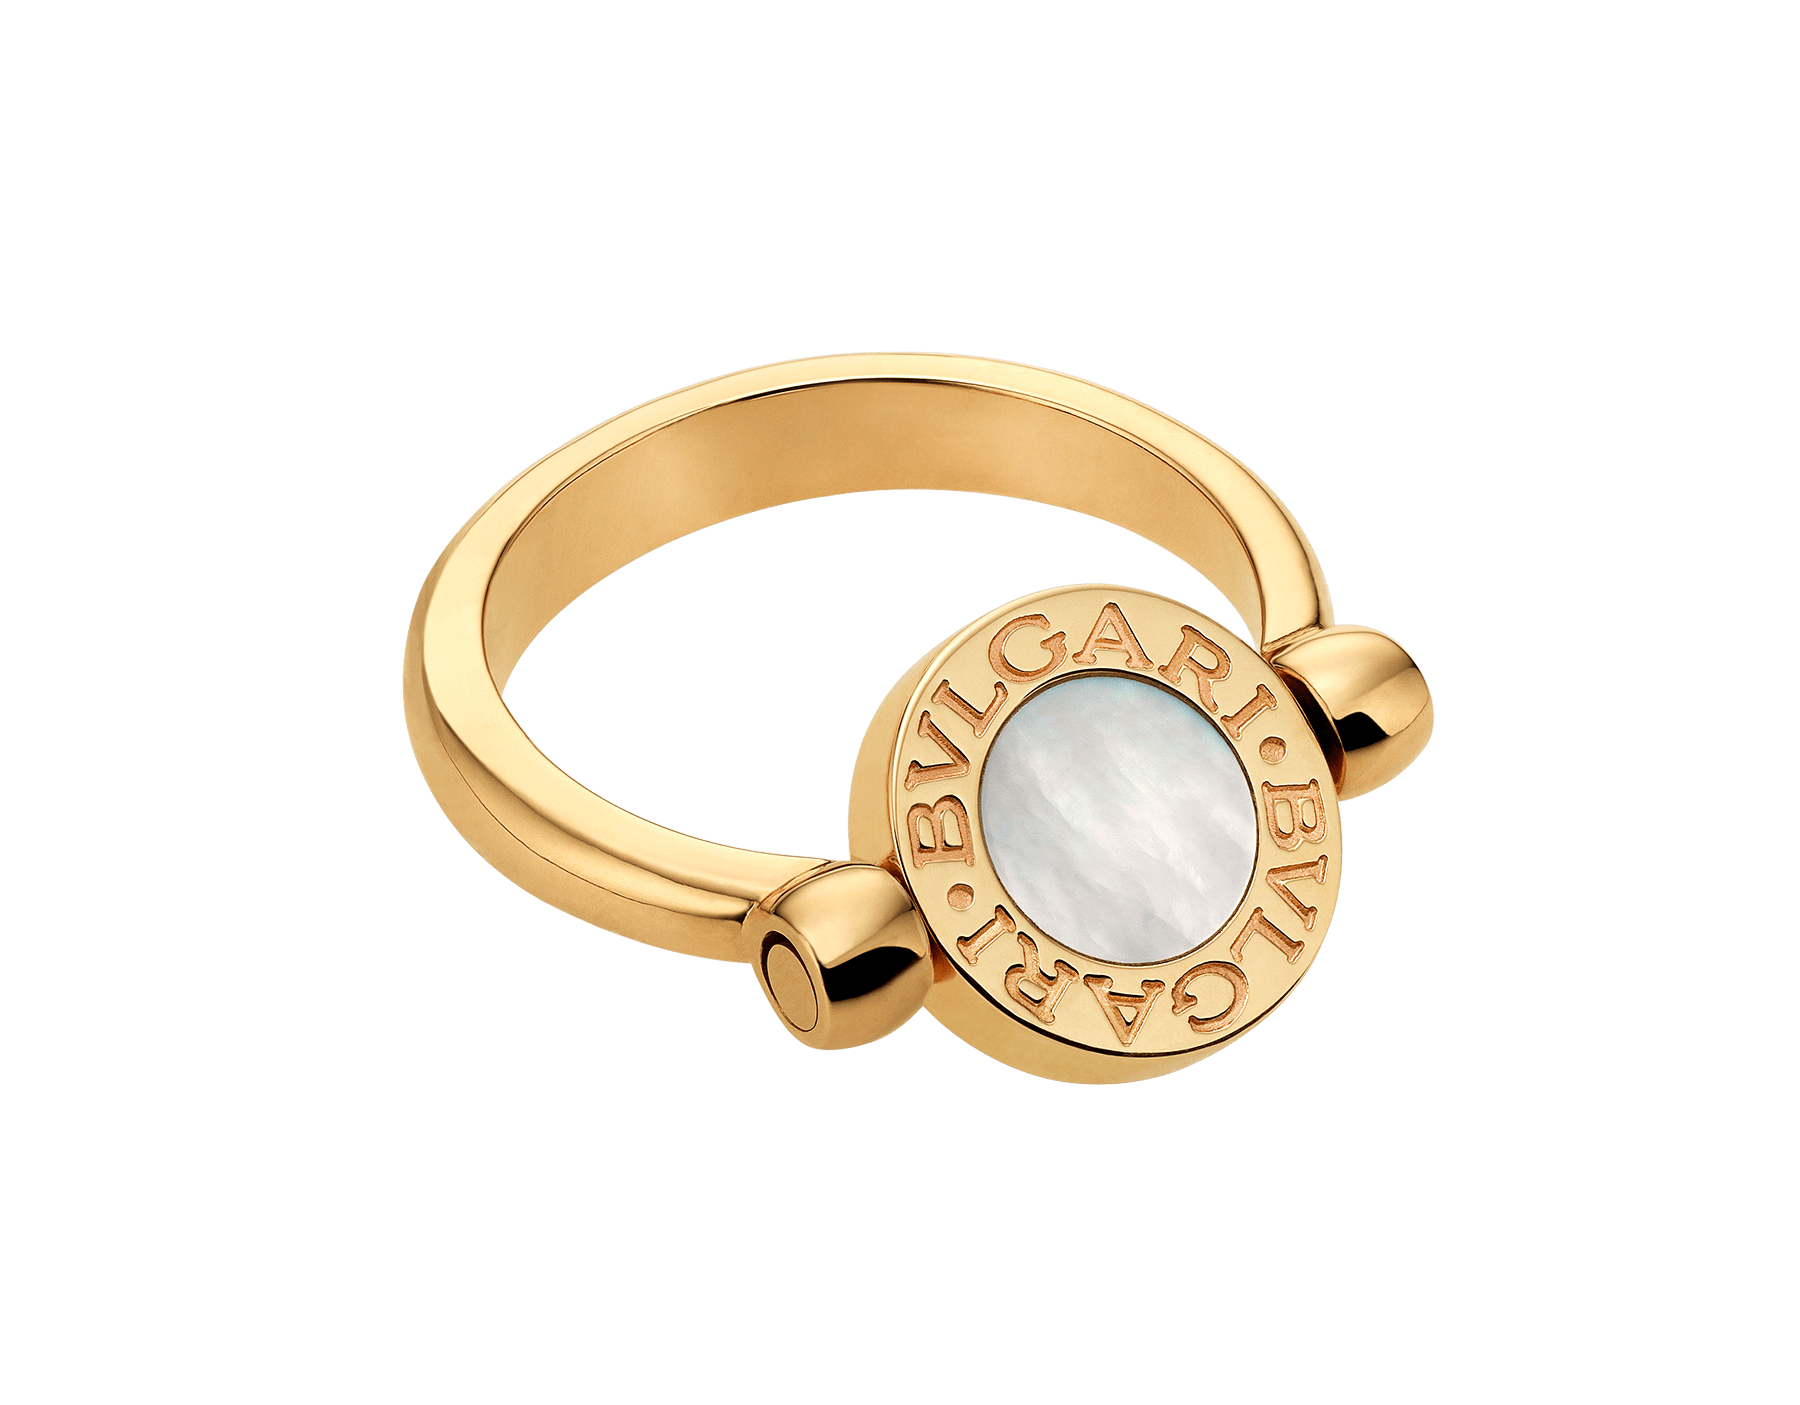 BVLGARI BVLGARI 18 kt yellow gold flip ring set with mother-of-pearl and onyx elements AN857191 image 1